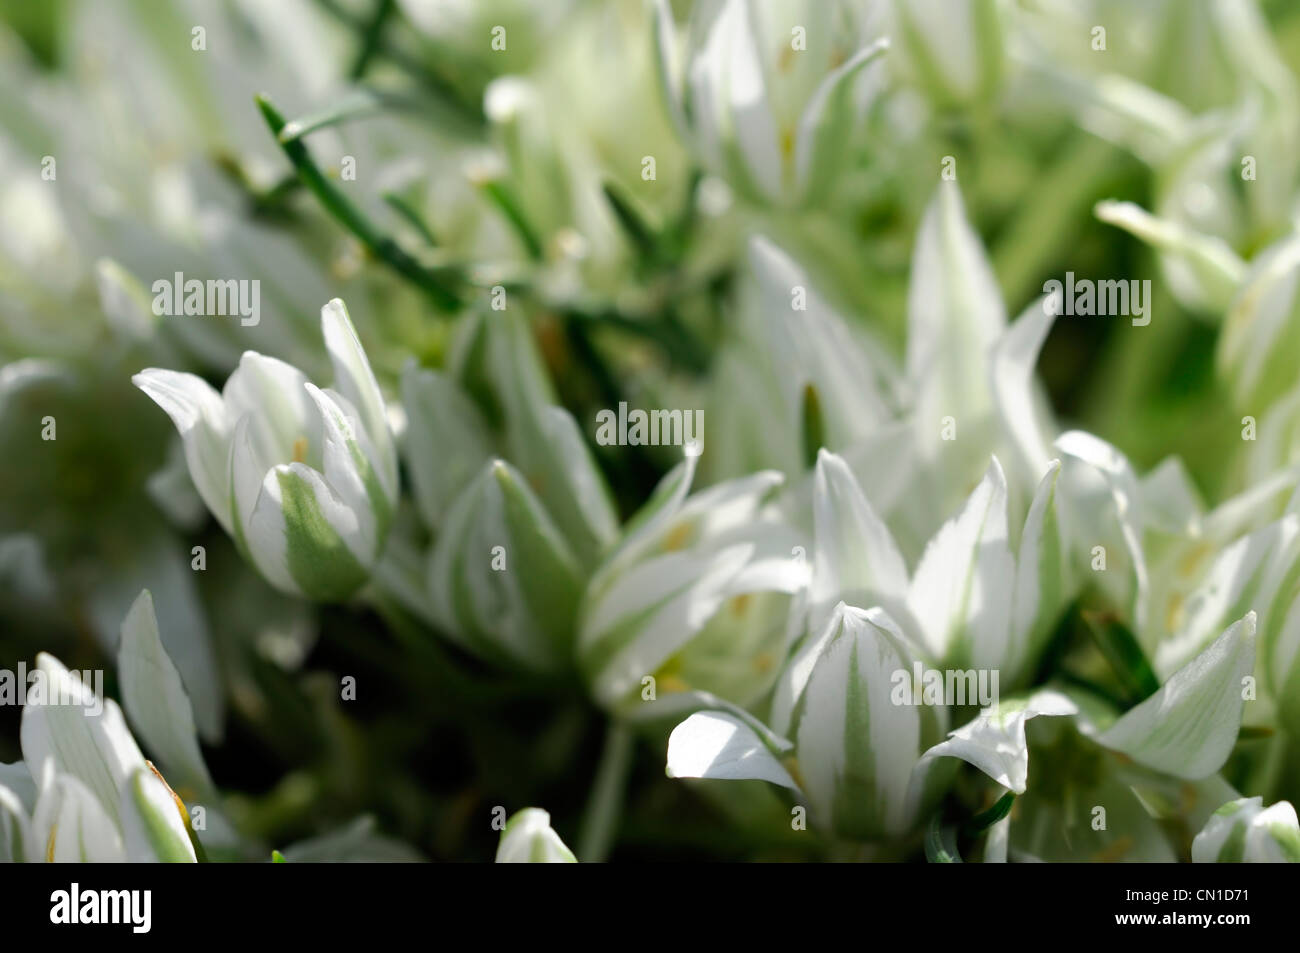 White star shaped flowers stock photos white star shaped flowers ornithogalum sigmoideum syn o nanum star of bethlehem colours colors white star shaped petals flowers flowering mightylinksfo